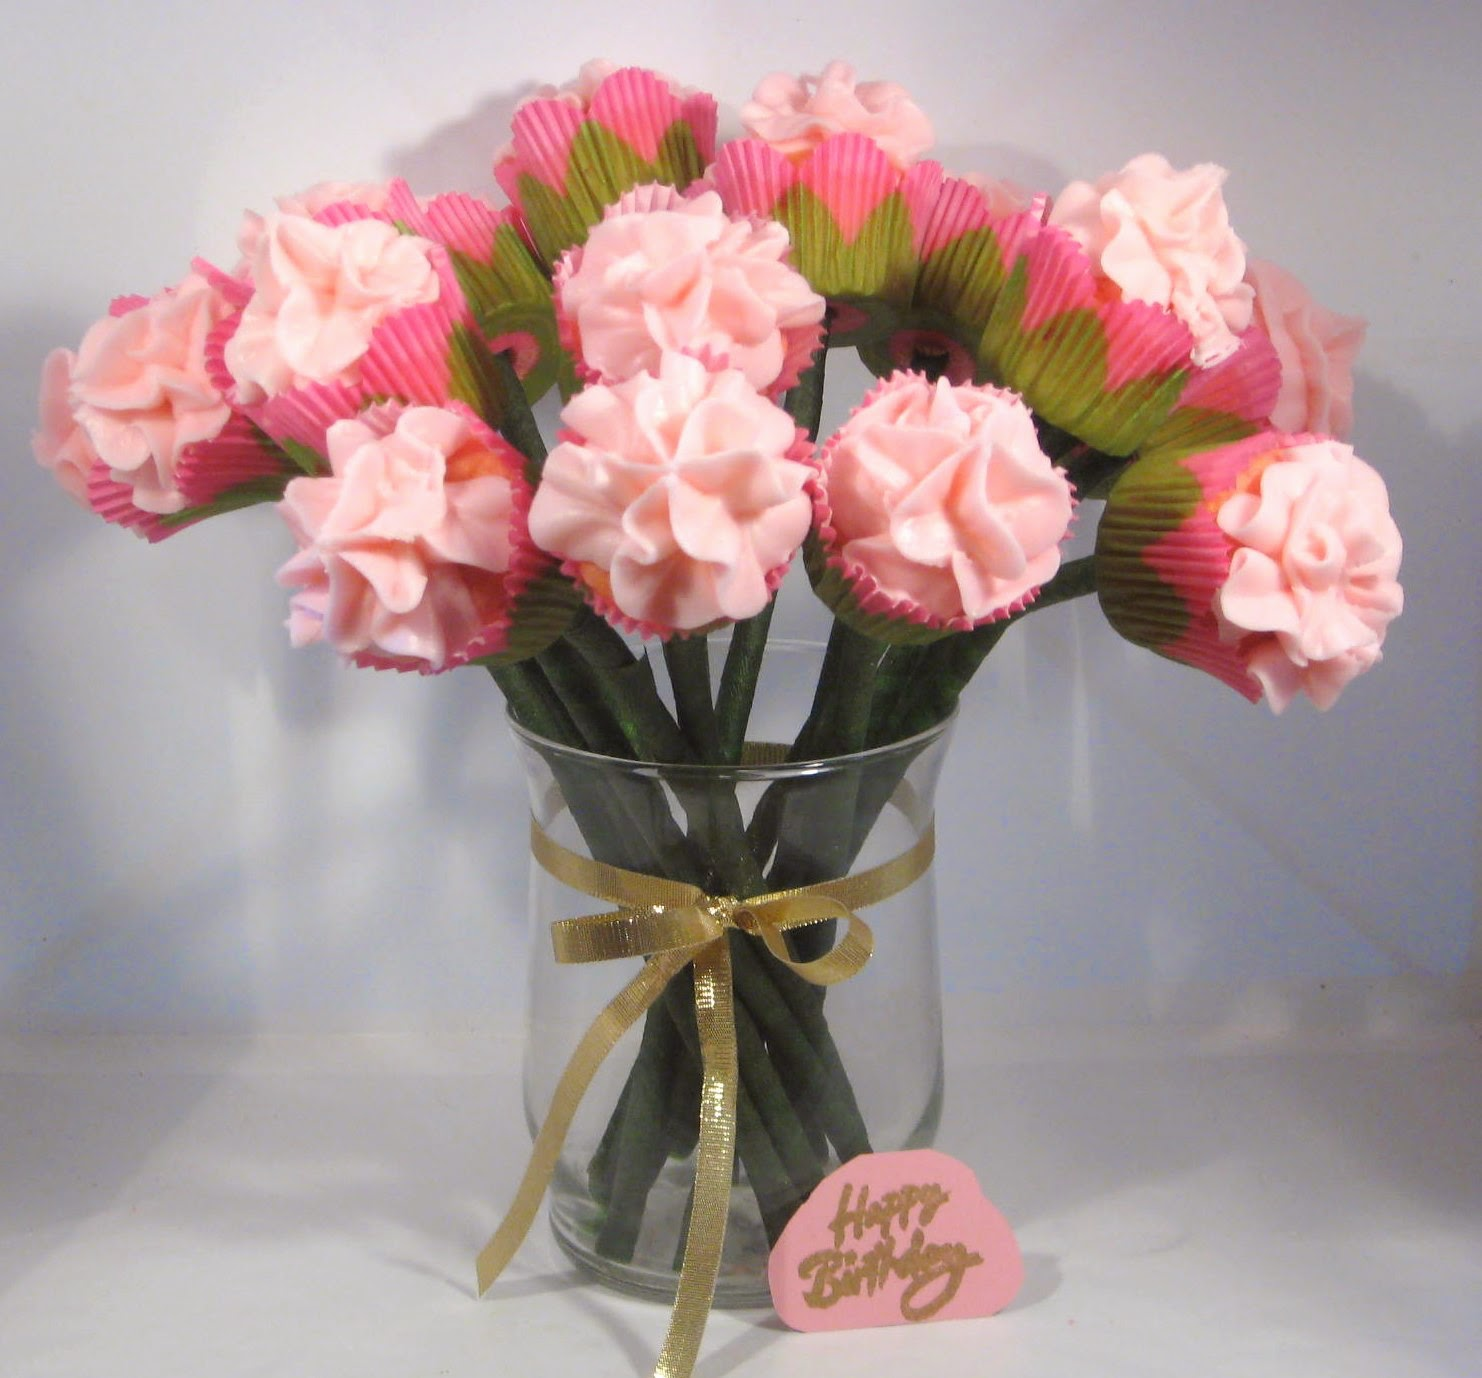 how to make a cupcake bouquet in a vase